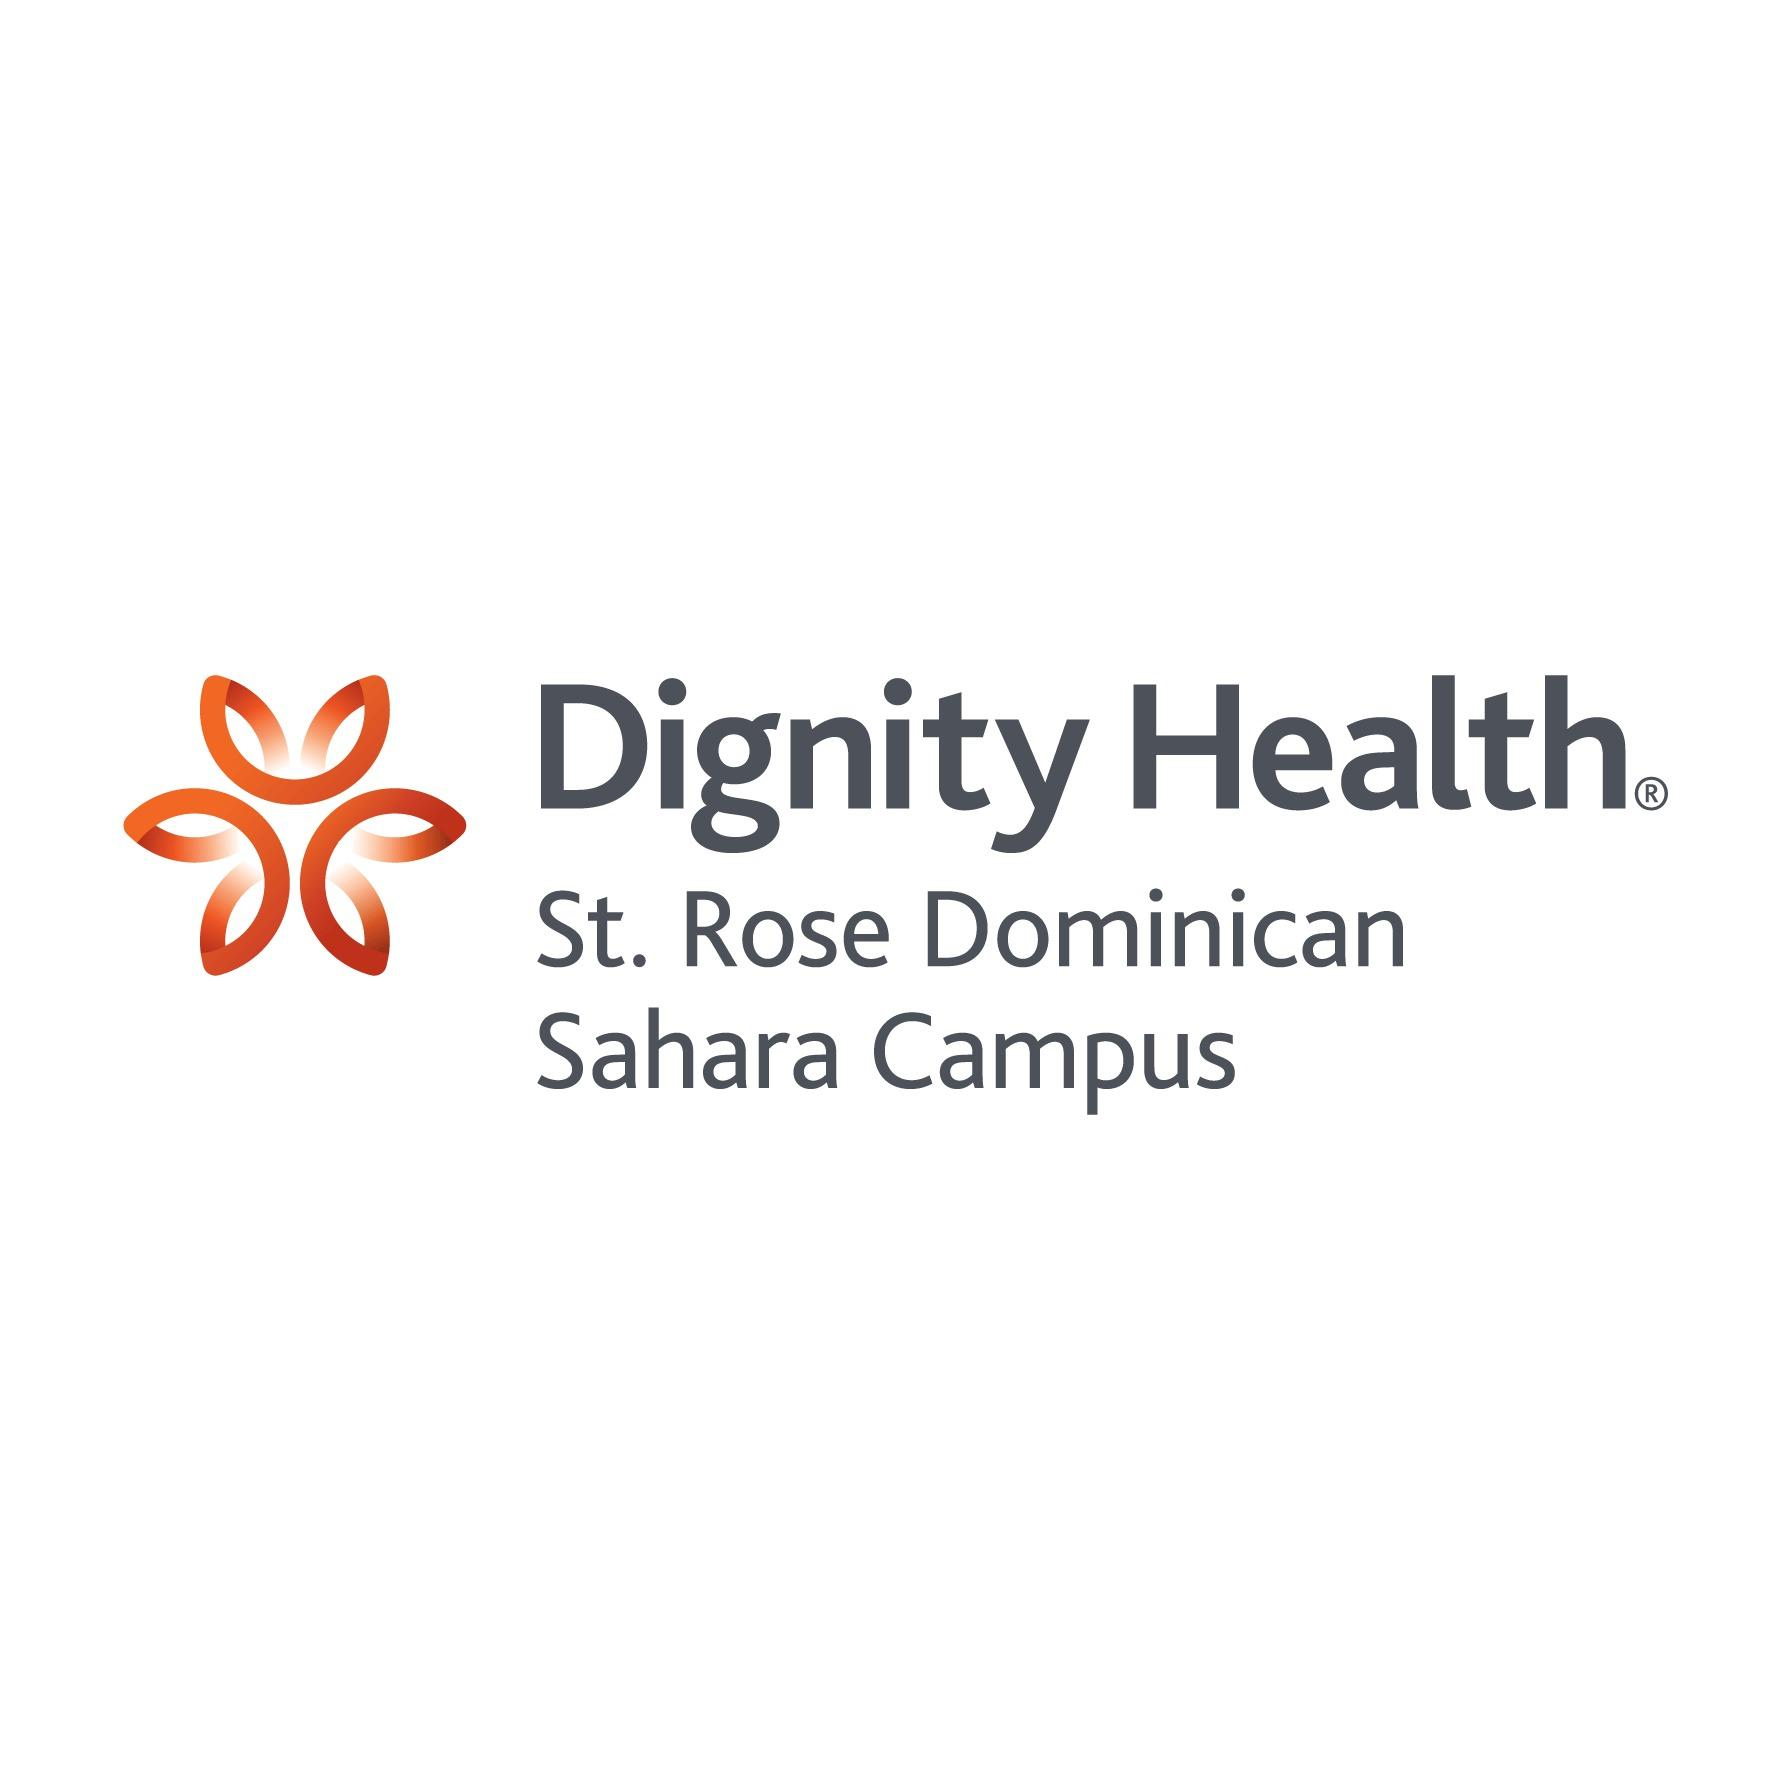 Emergency Room - Dignity Health - St. Rose Dominican, Sahara Campus - Las Vegas, NV